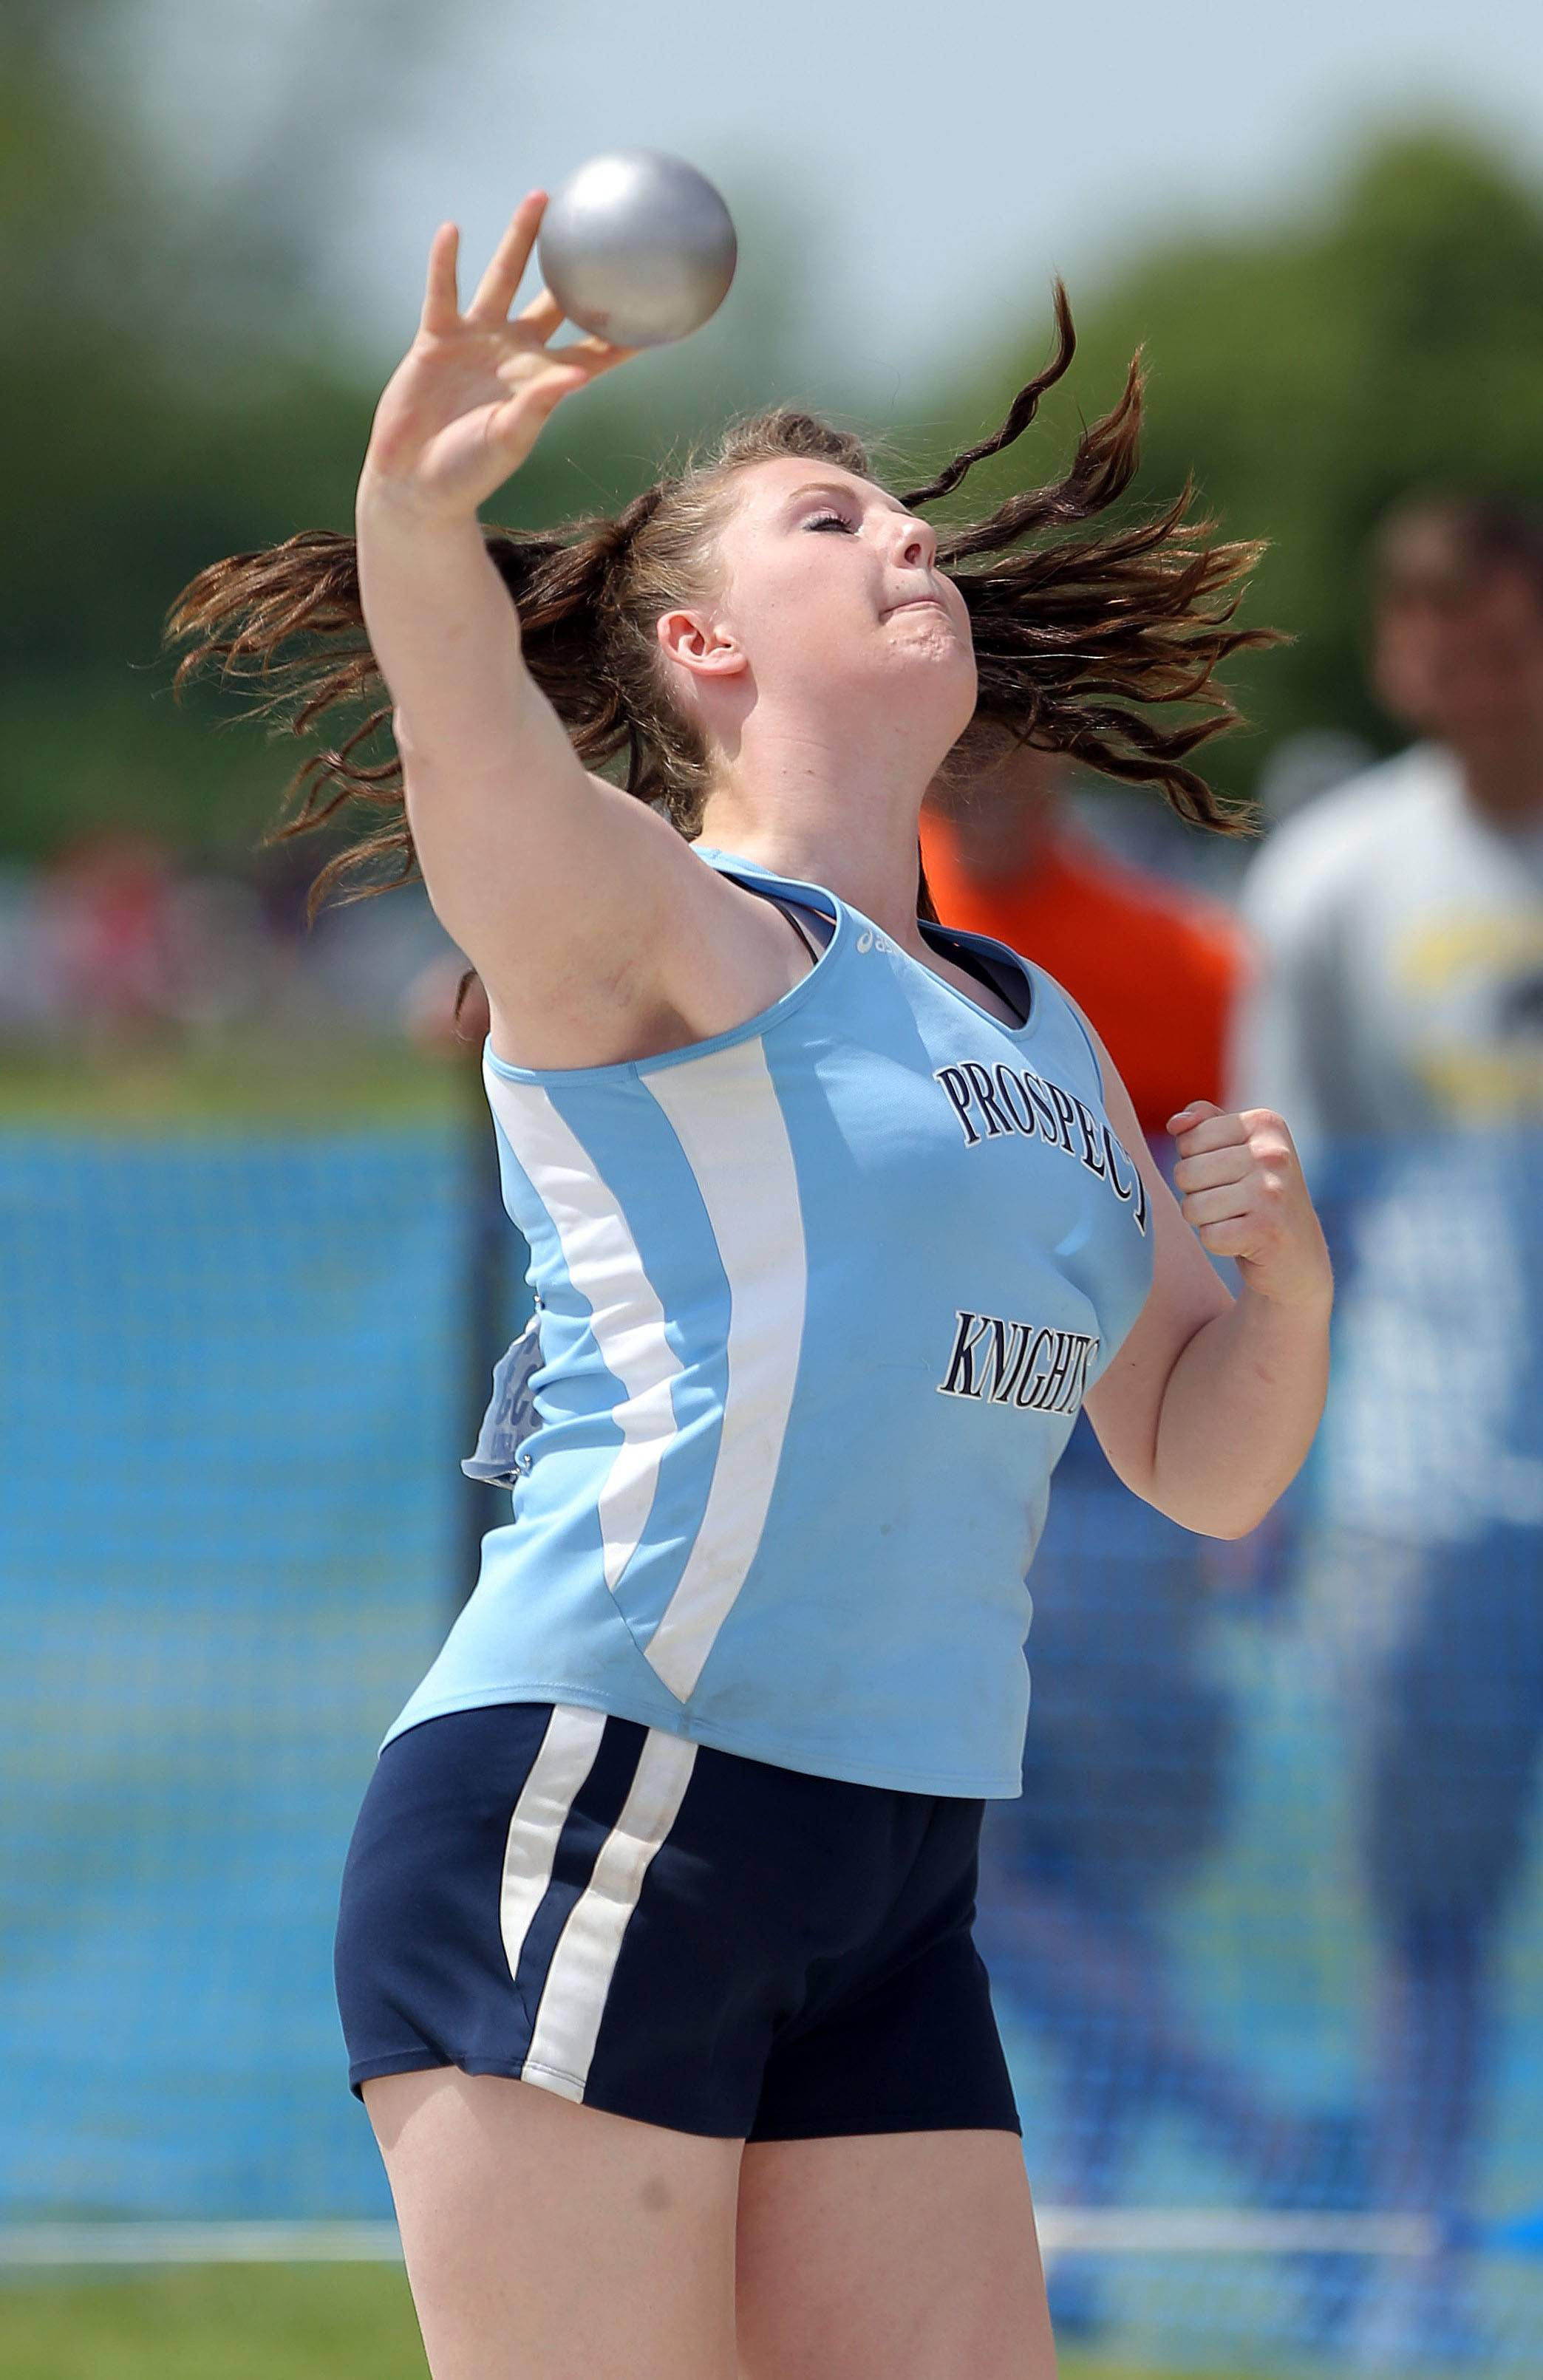 Prospect's Erin Reese competes in the class 3A shot put during the girls track and field state finals at Eastern Illinois University in Charleston Saturday.